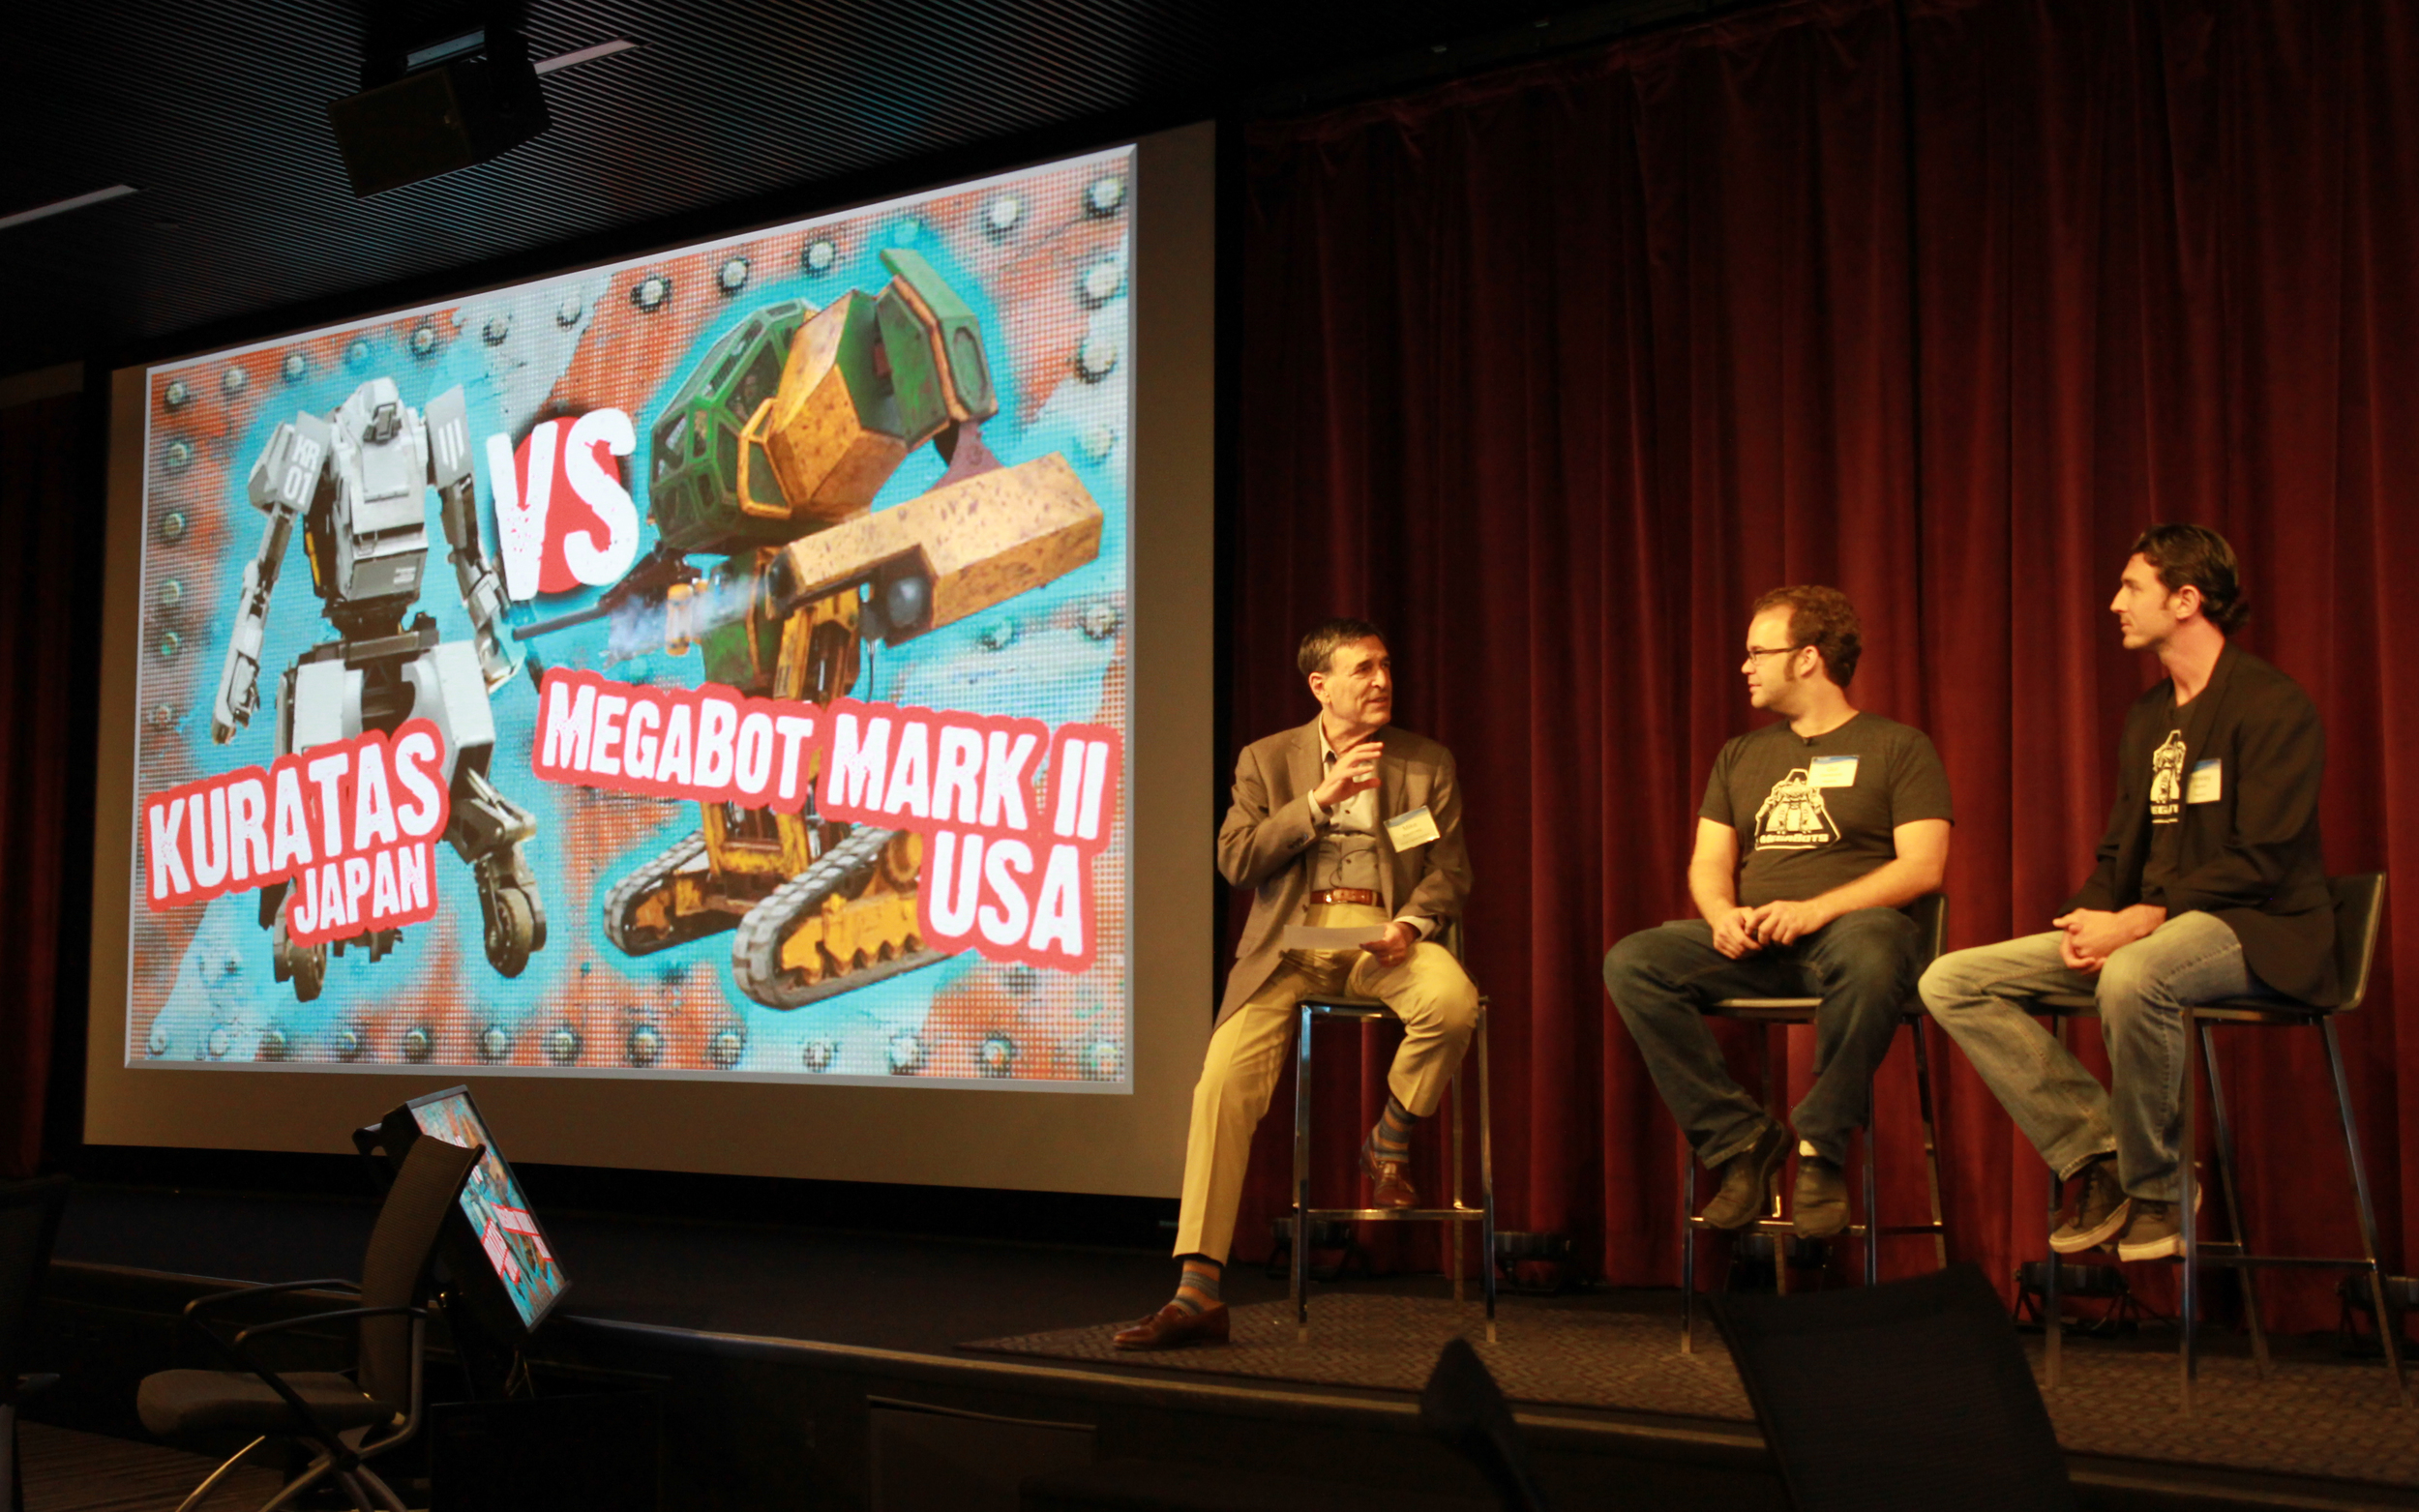 Creating a Giant Robot Fighting League Gui Cavalacanti and Brinkley Warren, Megabots moderated by Mike Kwatinetz, Azure General Partner